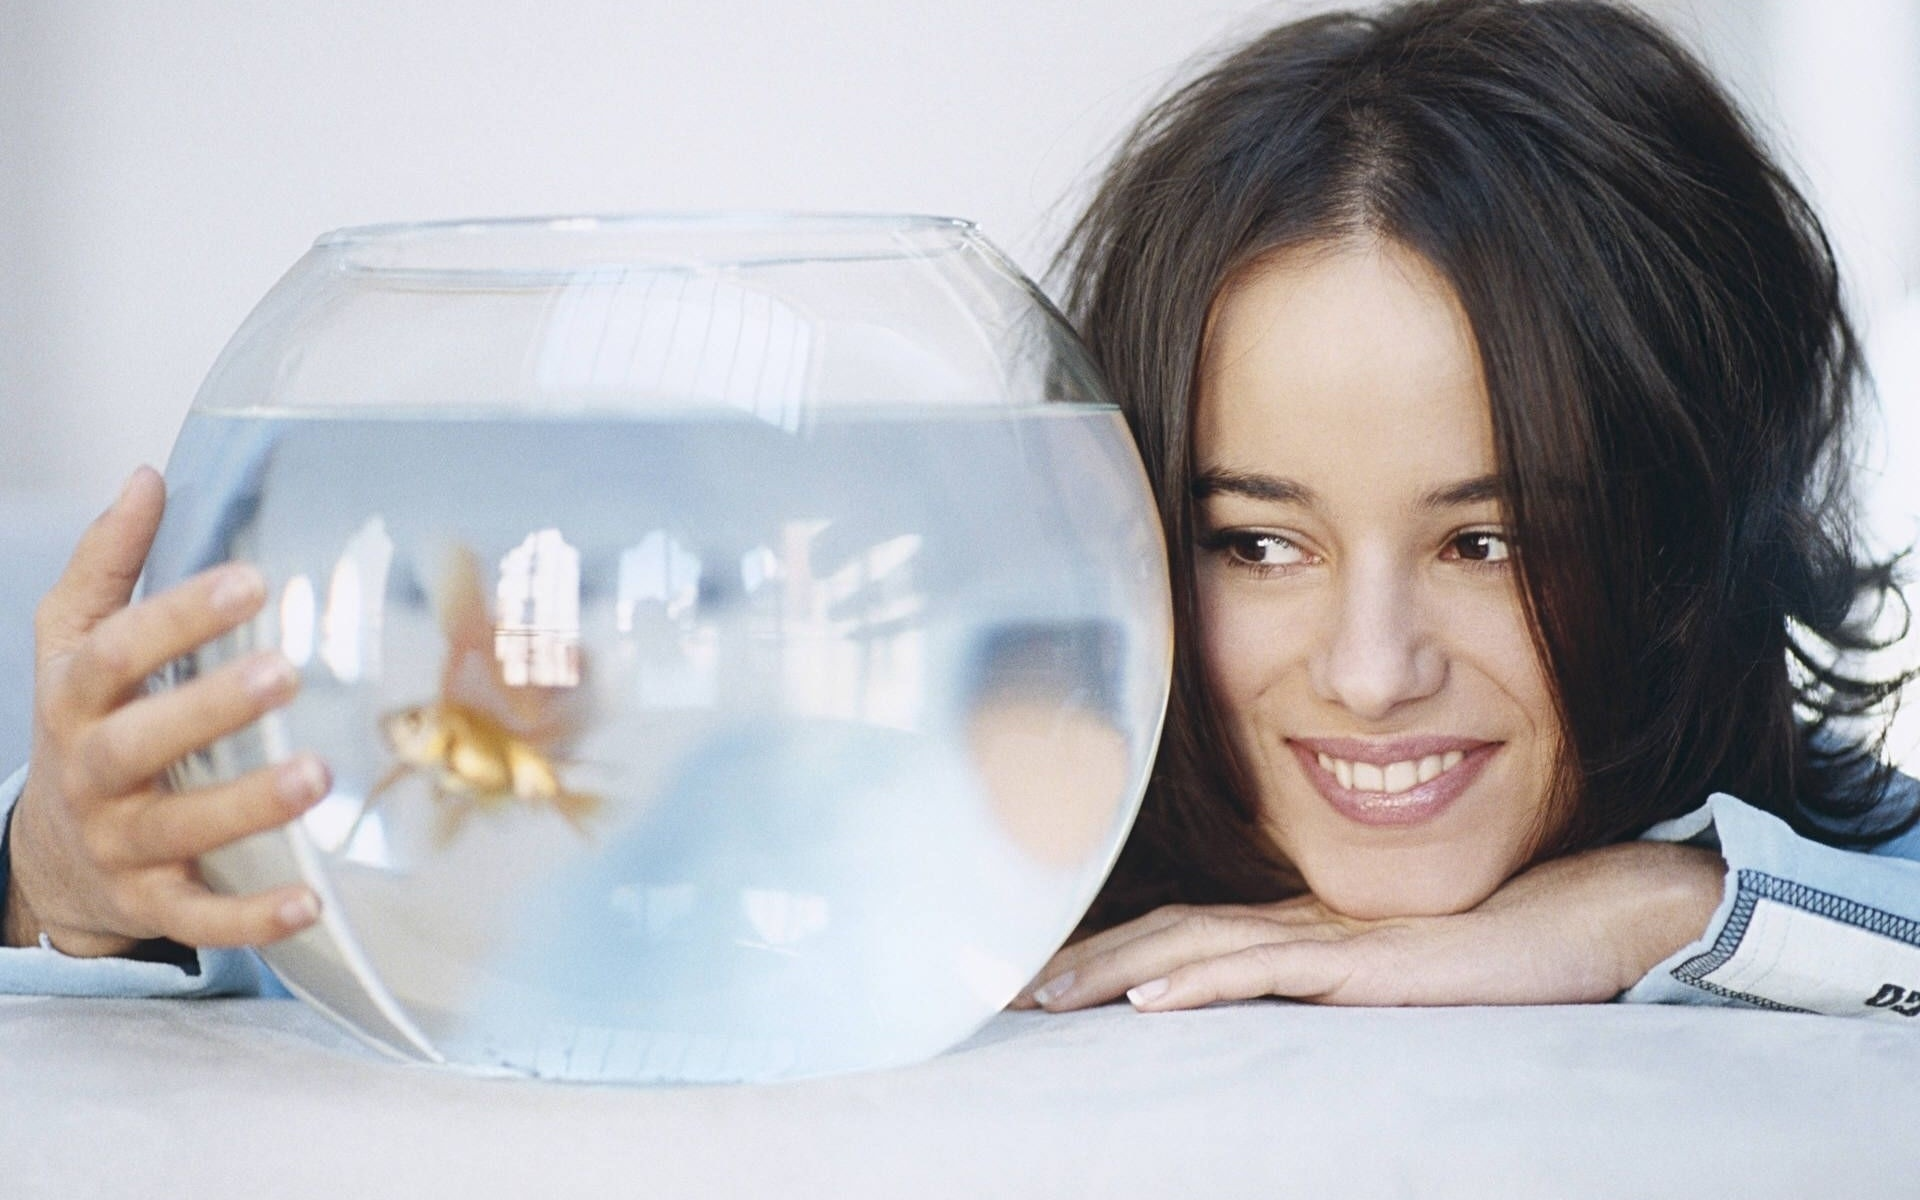 Alizée singers French fish HD Wallpaper